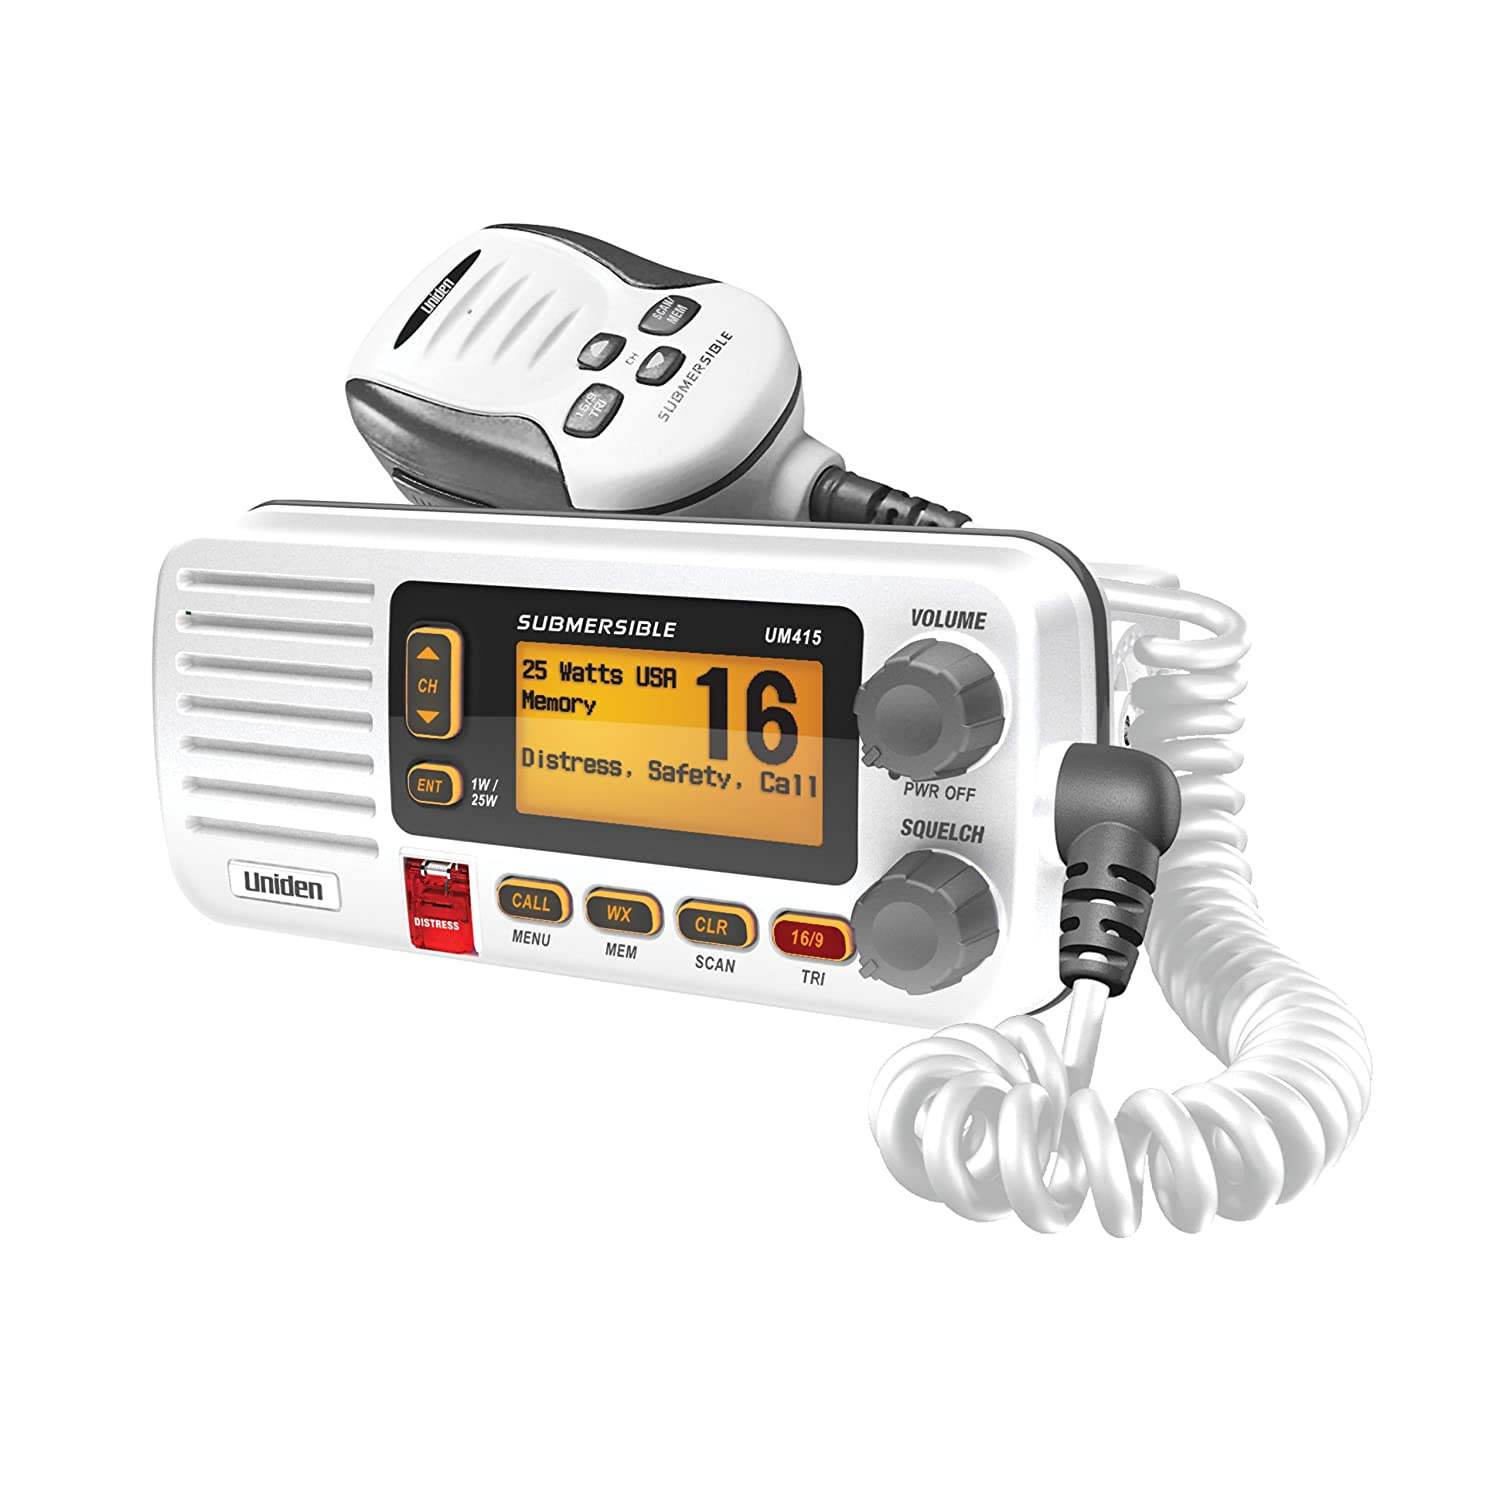 Uniden UM415 Full Featured VHF Marine Radio Uniden CA